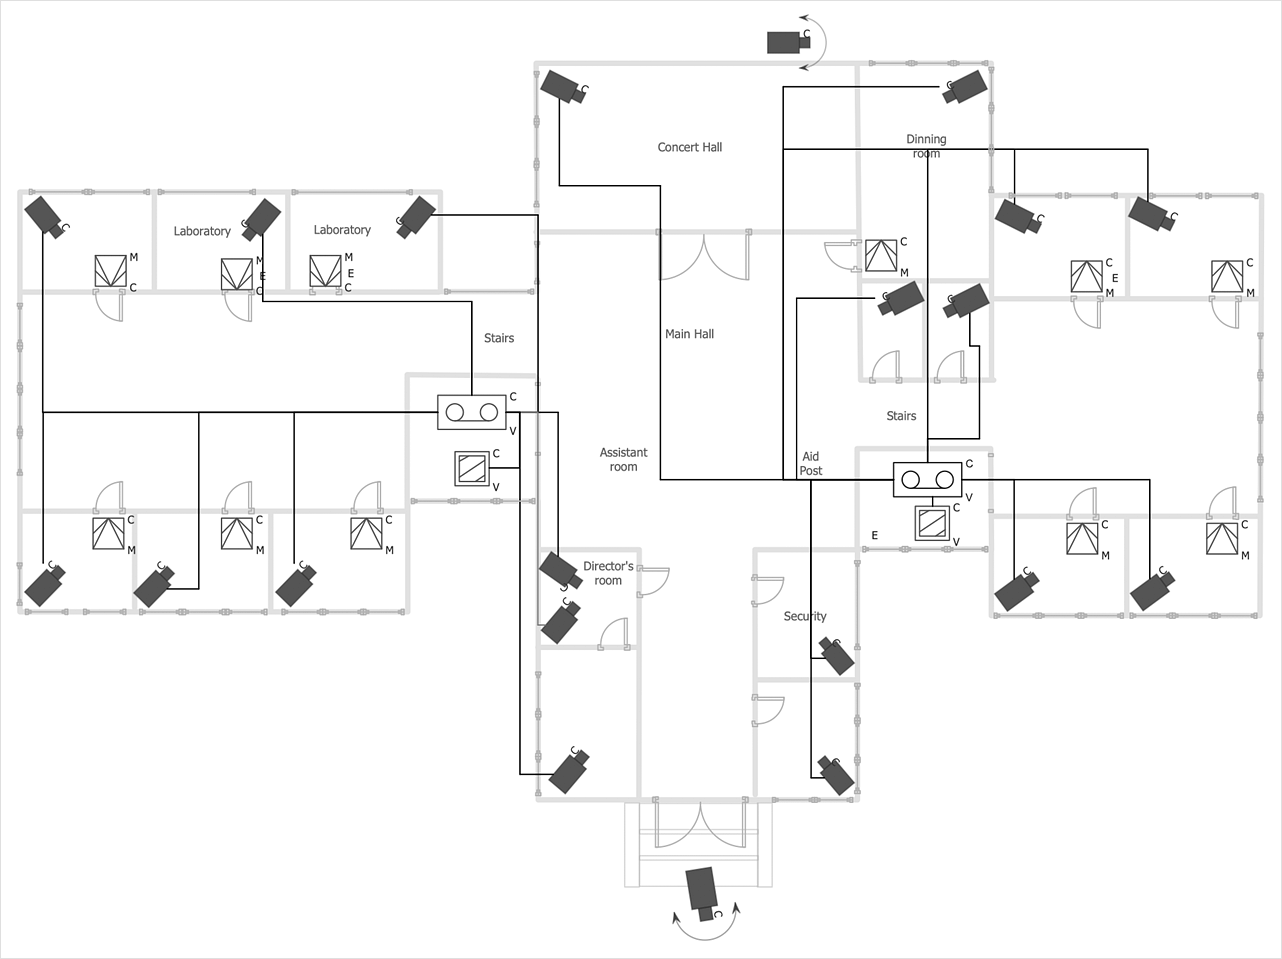 How to Create a CCTV Diagram. Closed circuit television